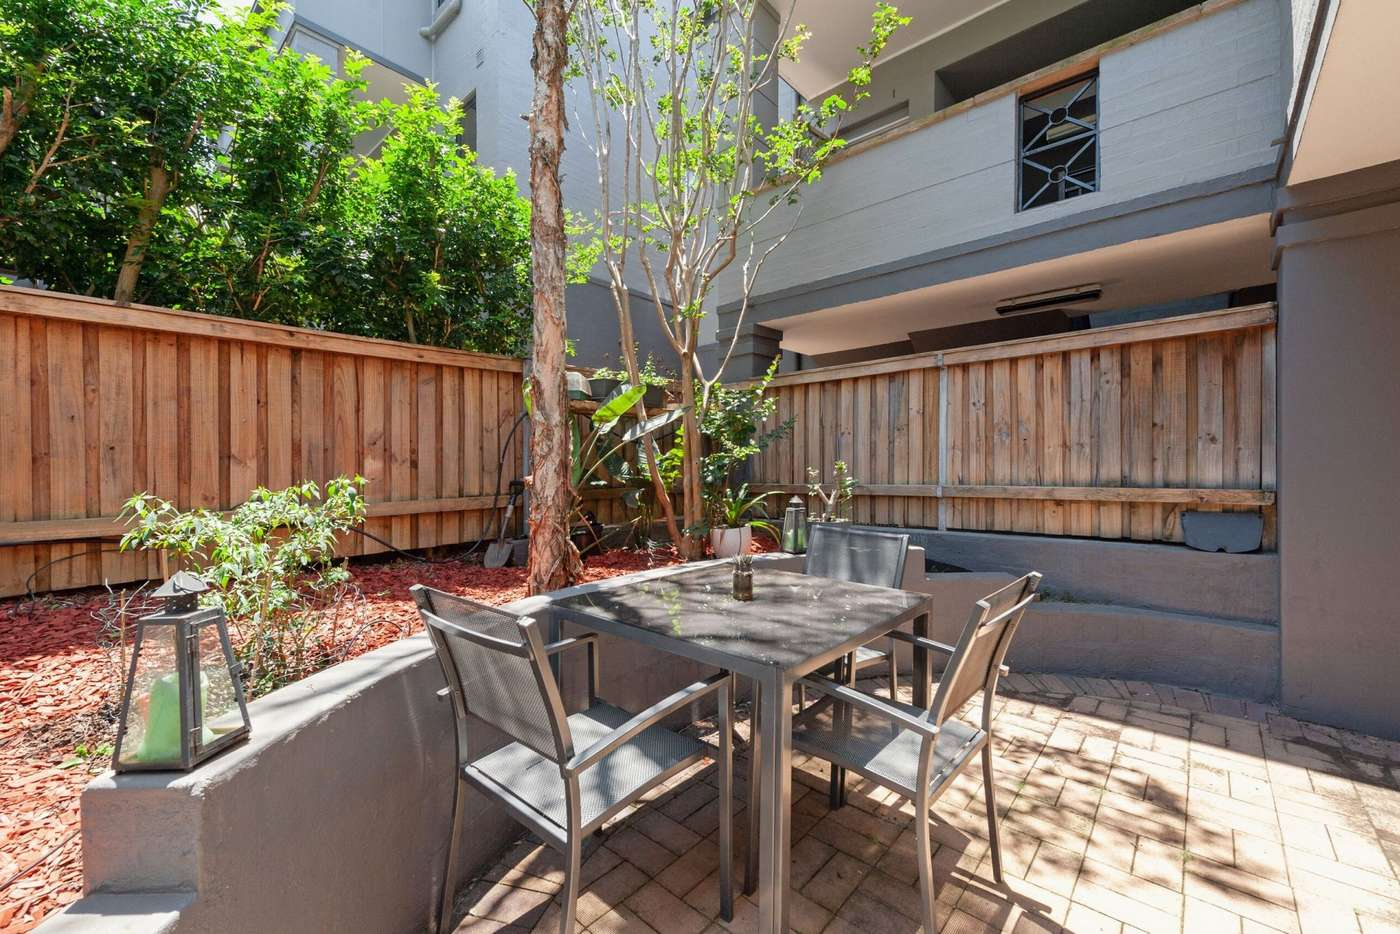 Main view of Homely apartment listing, 25/5-17 Pacific Highway, Roseville NSW 2069